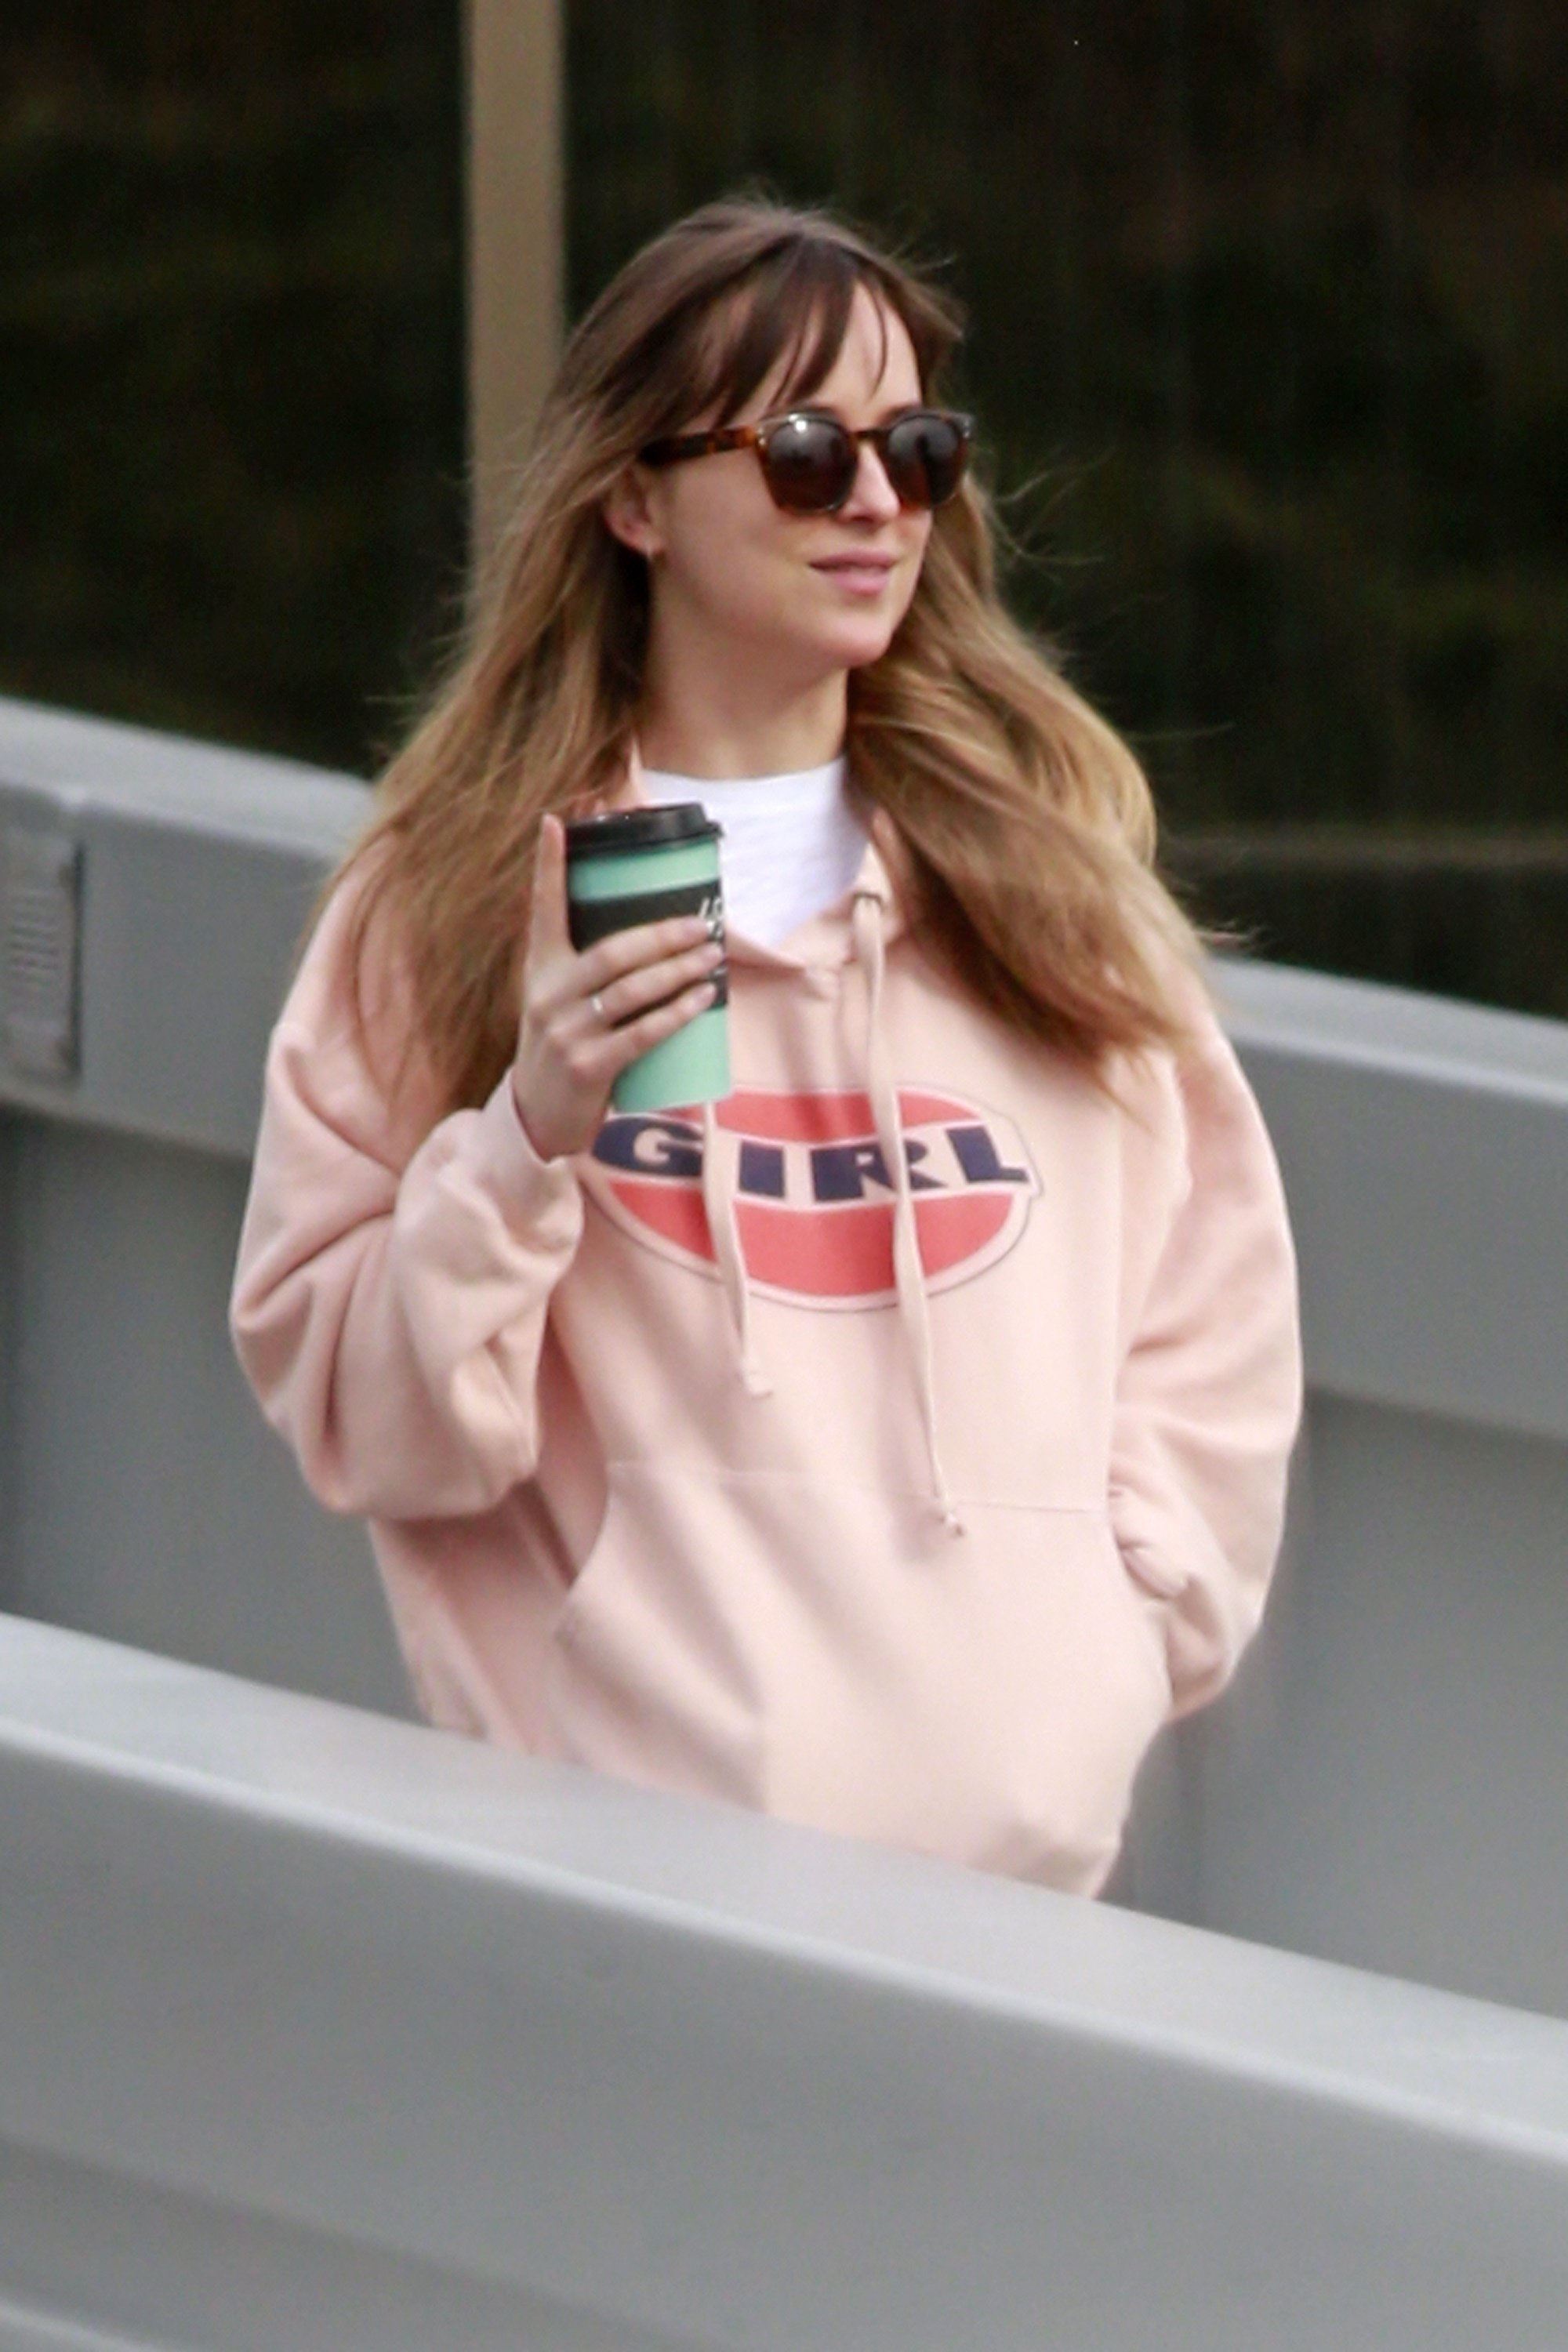 Burnaby, CANADA  - *EXCLUSIVE*  - Actress Dakota Johnson was spotted leaving the studio after a brief visit on a day off from work in Burnaby, BC, Canada. *Shot on 03/07/!8*  Pictured: Dakota Johnson  BACKGRID USA 8 MARCH 2018, Image: 365500192, License: Rights-managed, Restrictions: , Model Release: no, Credit line: Profimedia, AKM-GSI